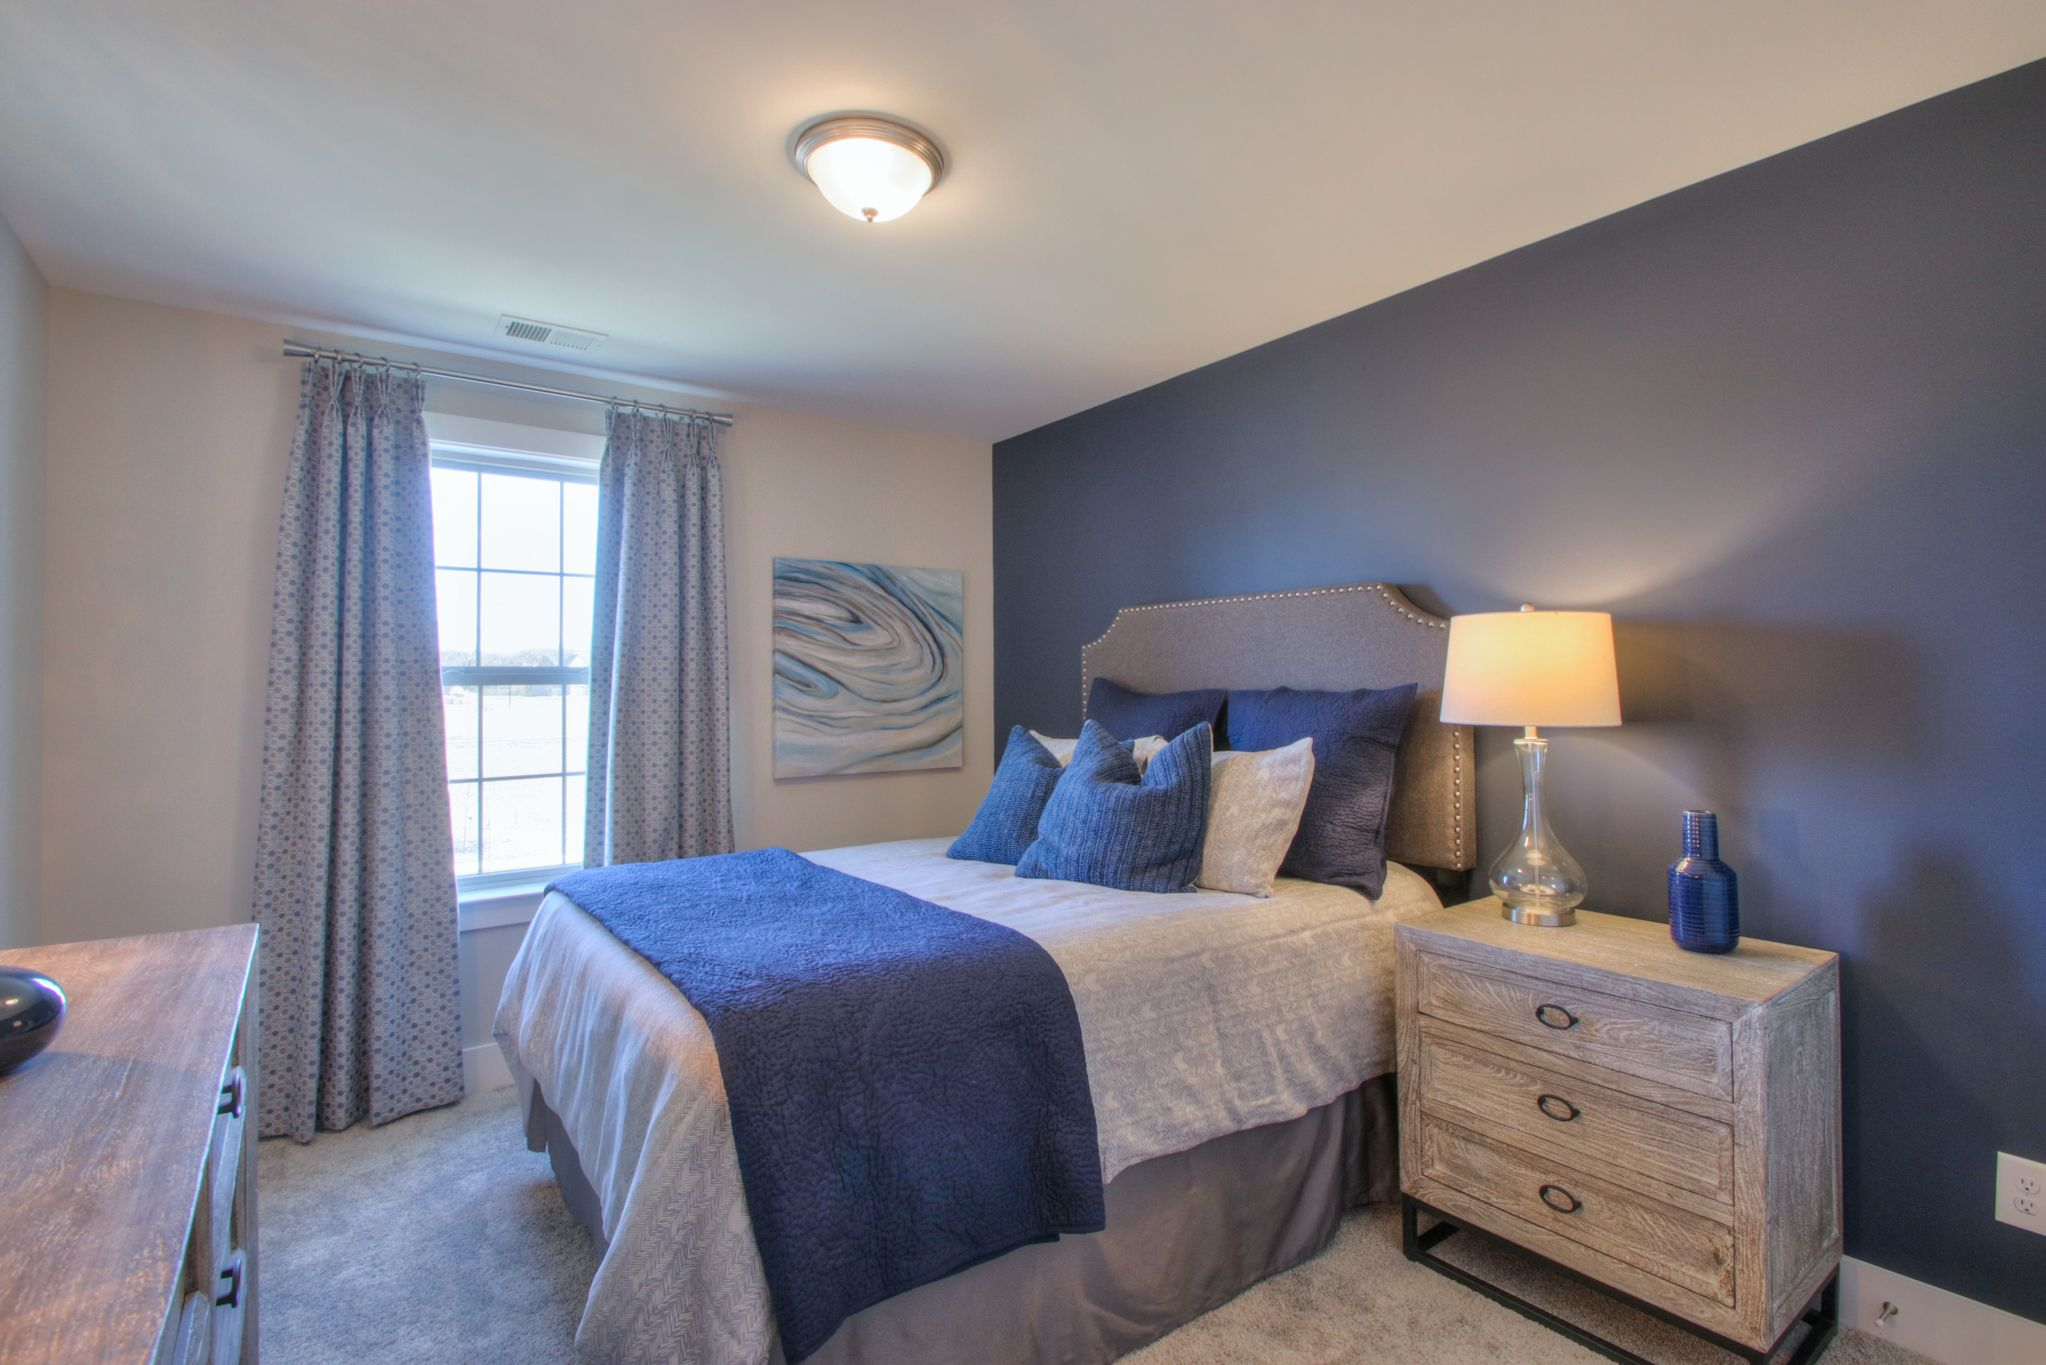 Bedroom featured in The Monterey By Goodall Homes in Nashville, TN